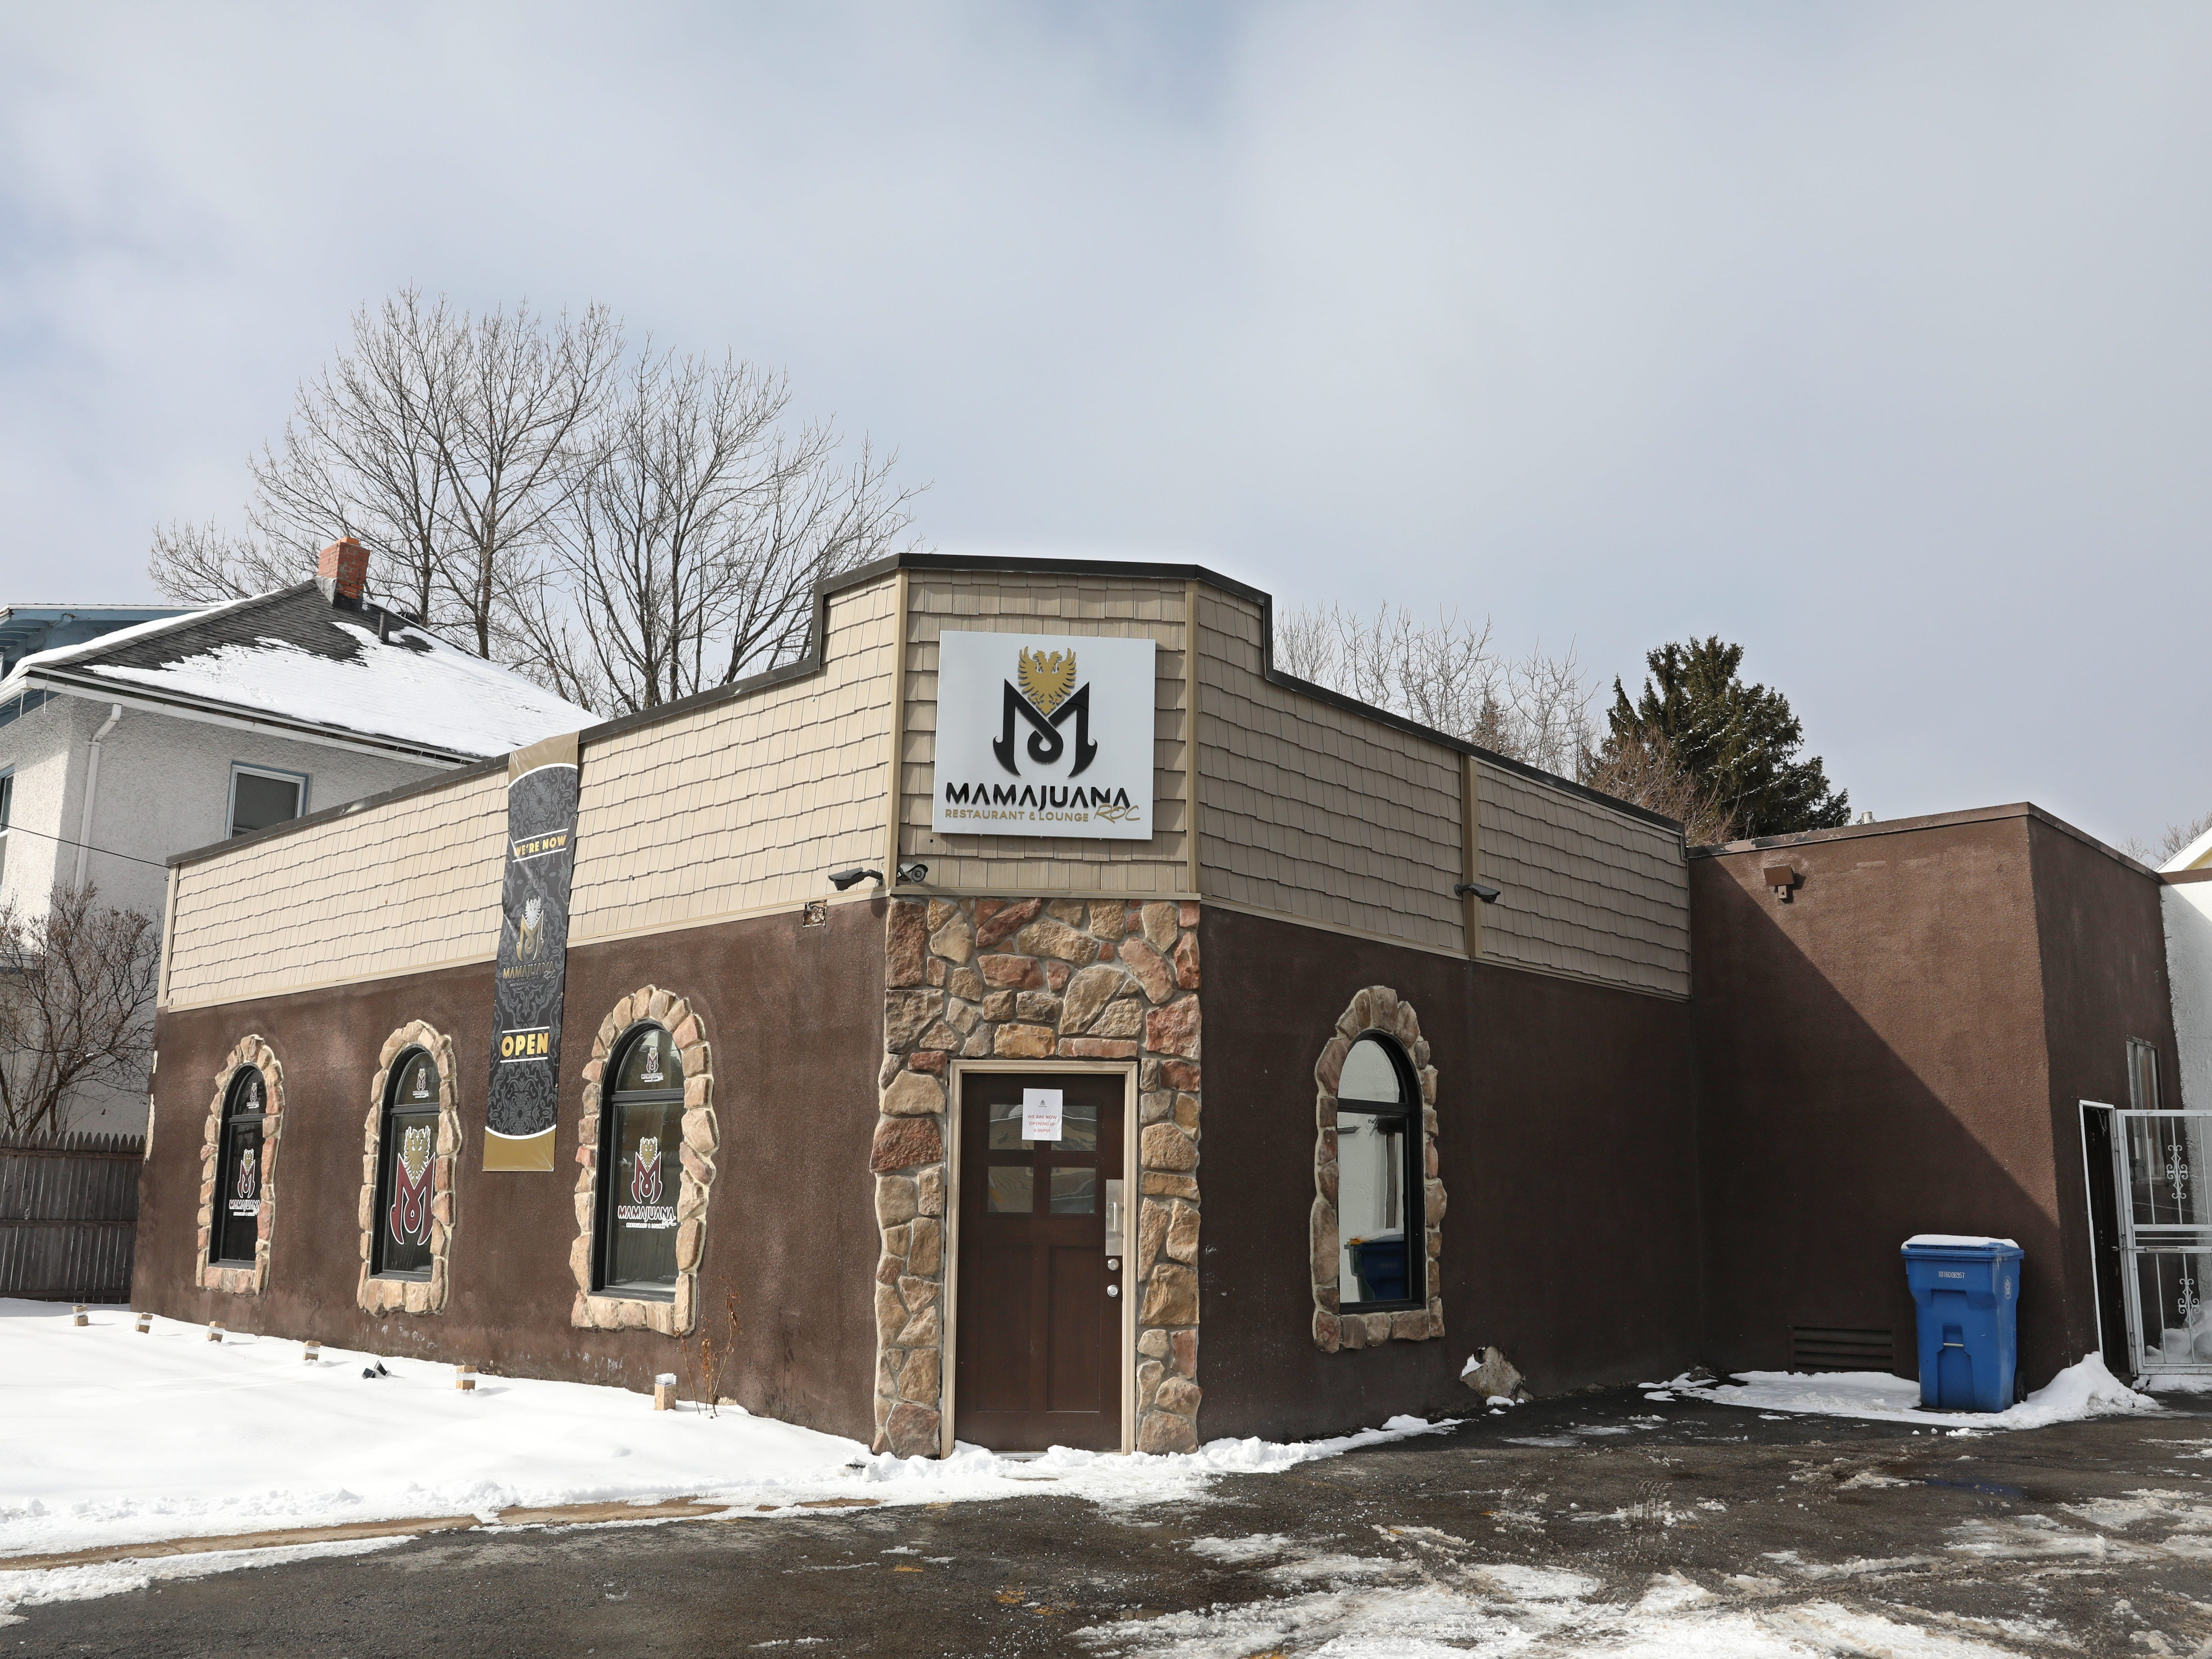 MamaJuana Restaurant and Lounge, 2260 Clifford Ave. in Rochester, is much bigger than it appears from the outside.